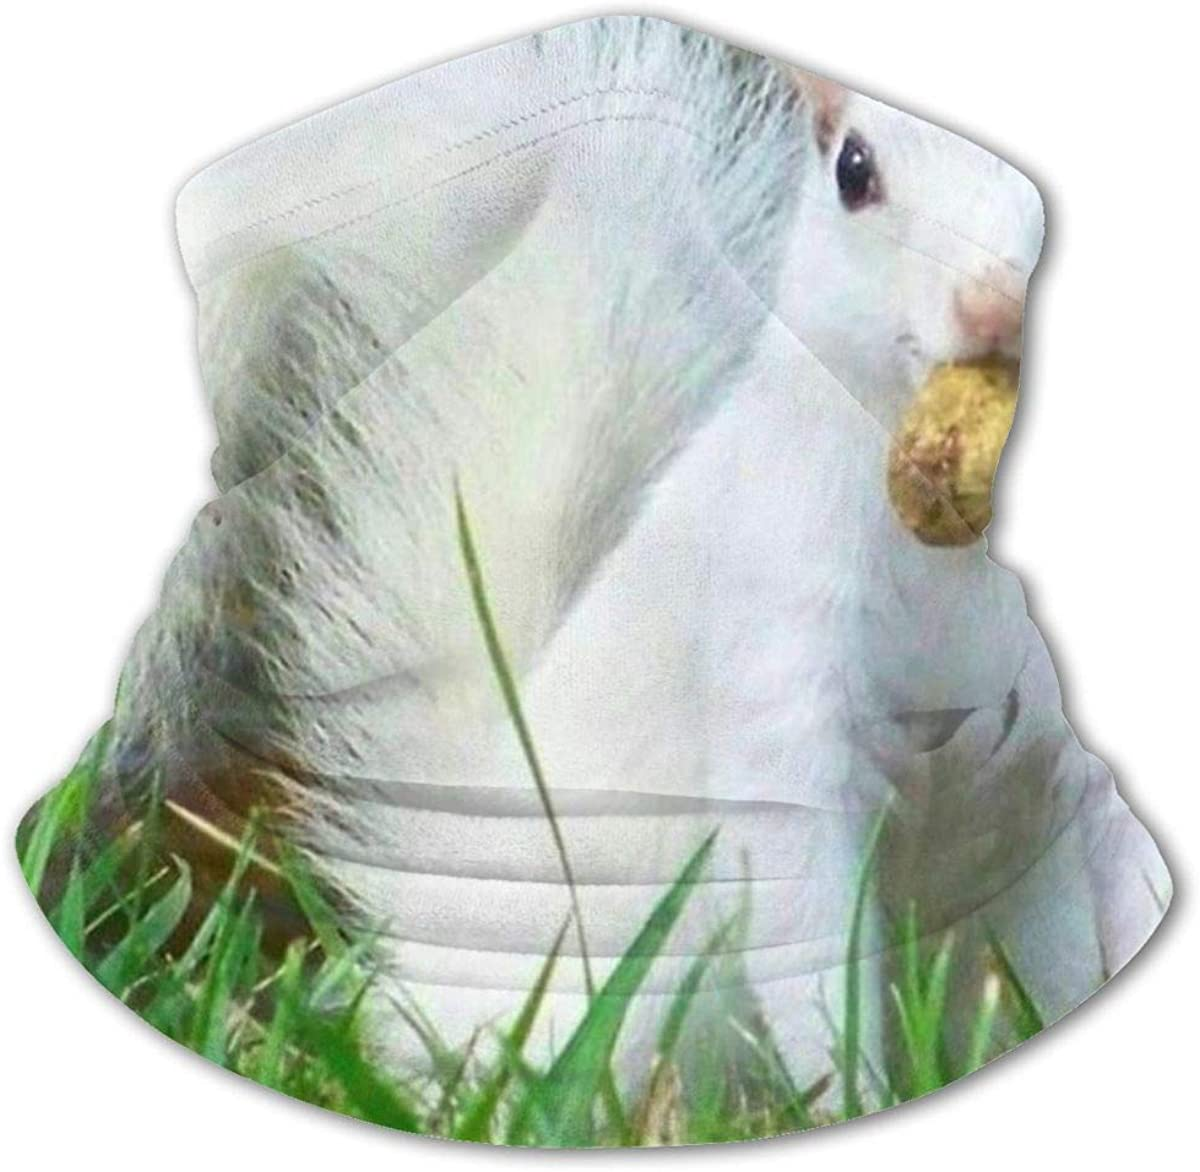 White Squirrels In Illinois Headwear For Girls And Boys, Head Wrap, Neck Gaiter, Headband, Tenn Fishing Mask, Magic Scarf, Tube Mask, Face Bandana Mask For Camping Running Cycling